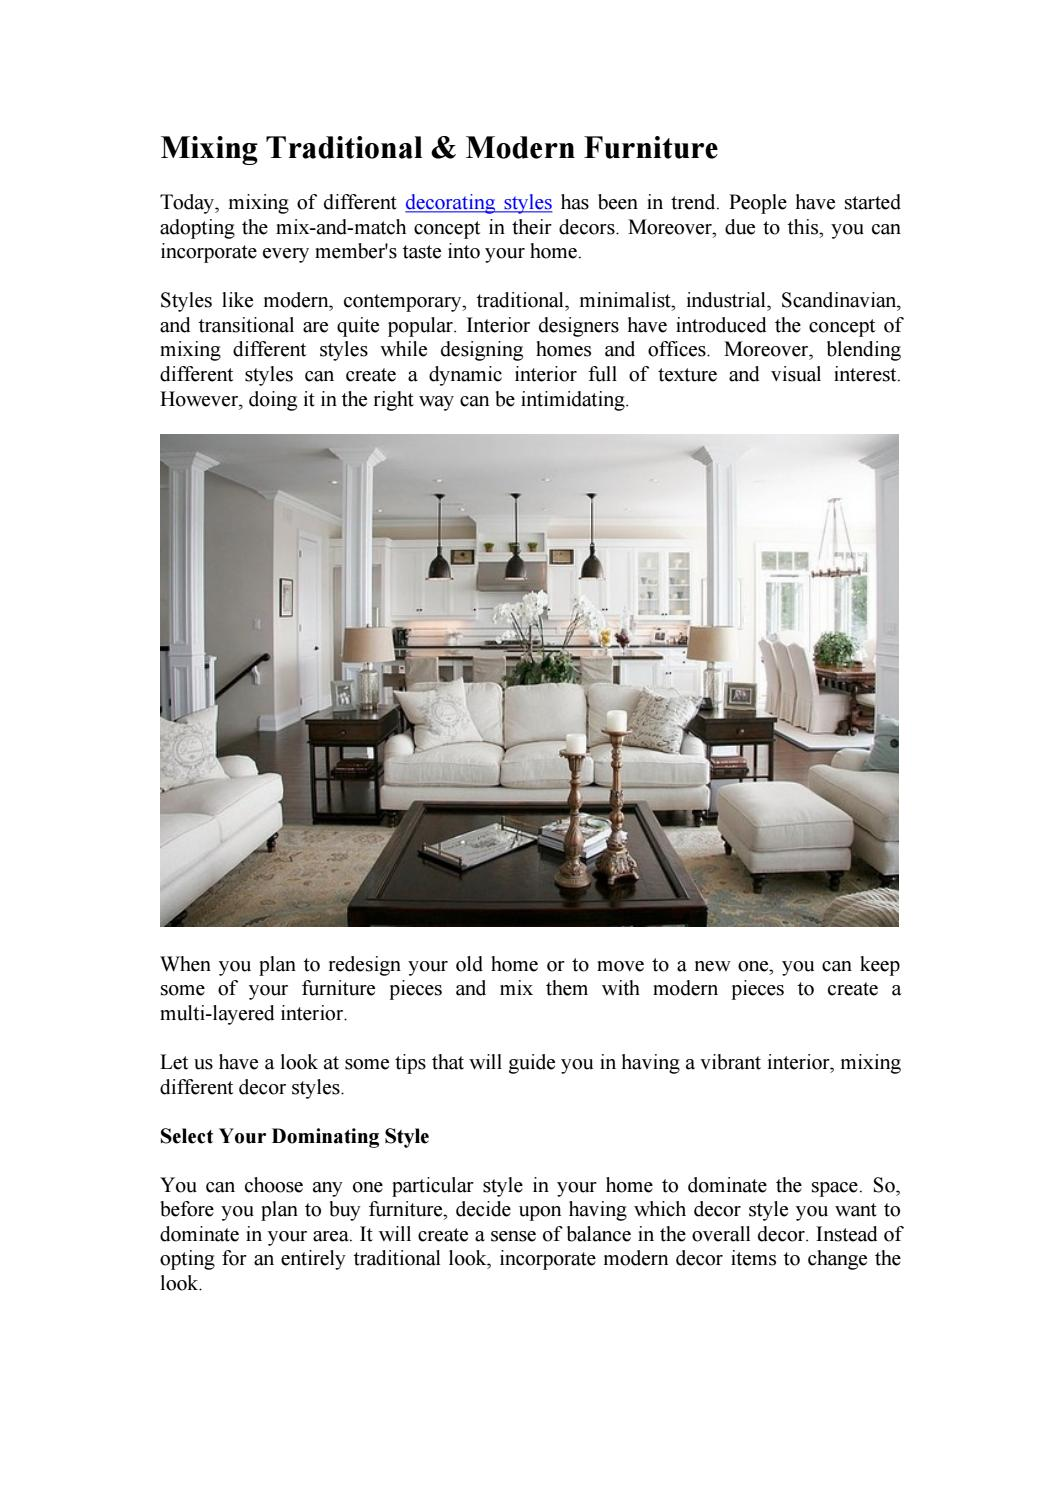 MIXING TRADITIONAL & MODERN FURNITURE by Furniture Store LA ...